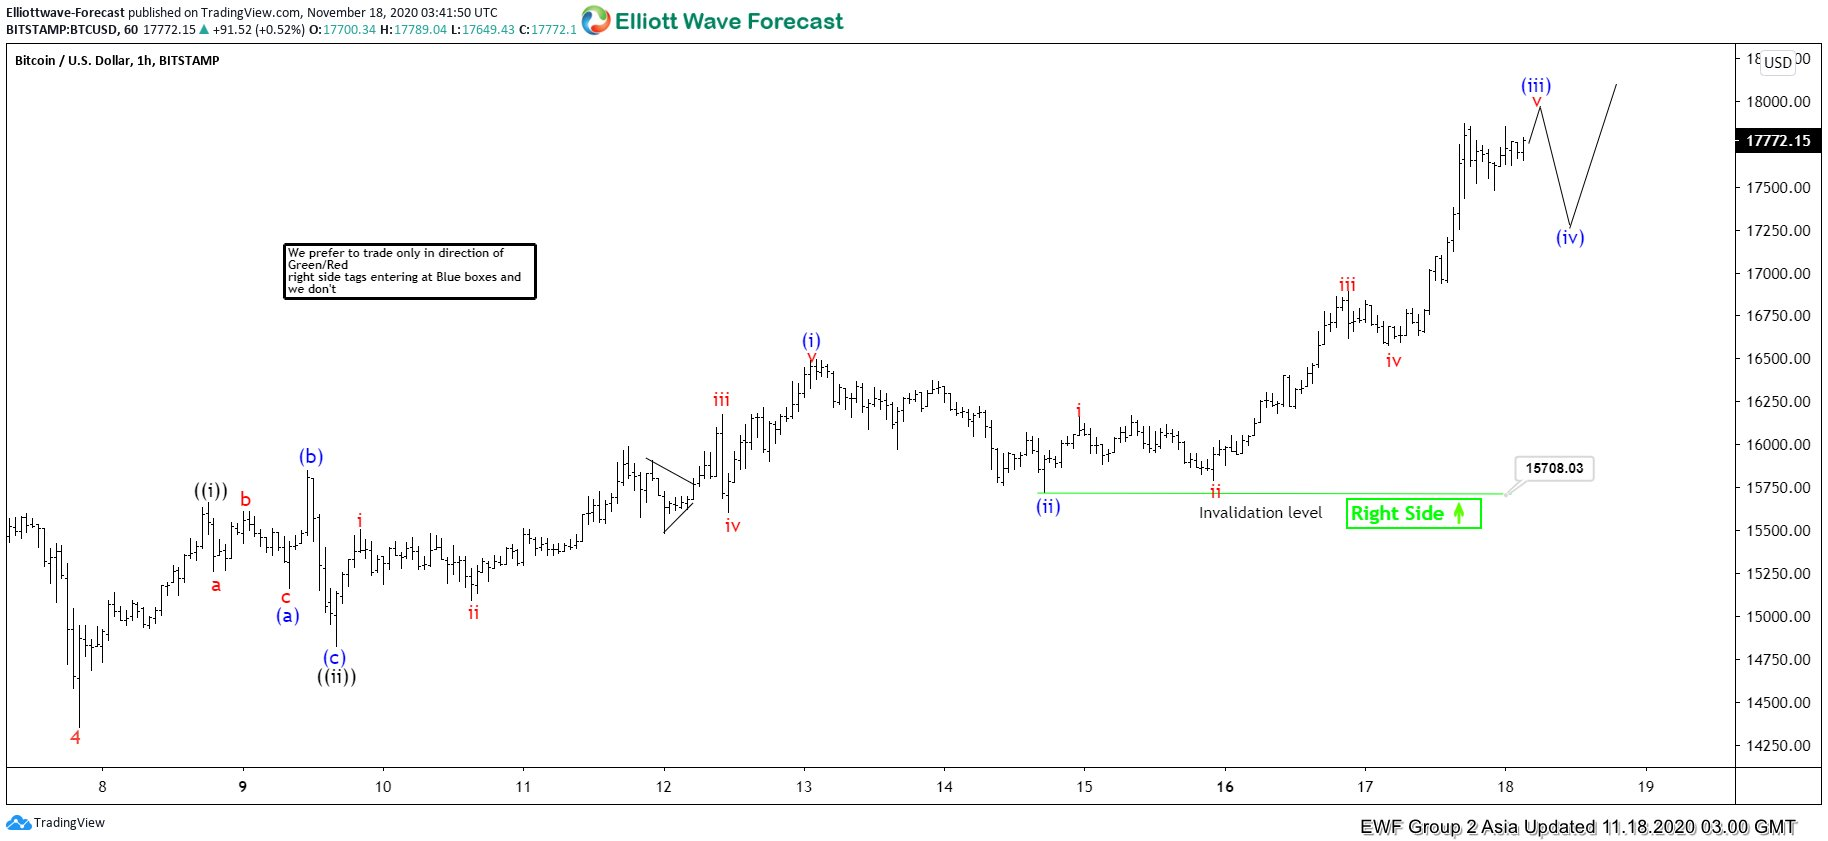 Elliott Wave View: Bitcoin Closing in to All-Time High